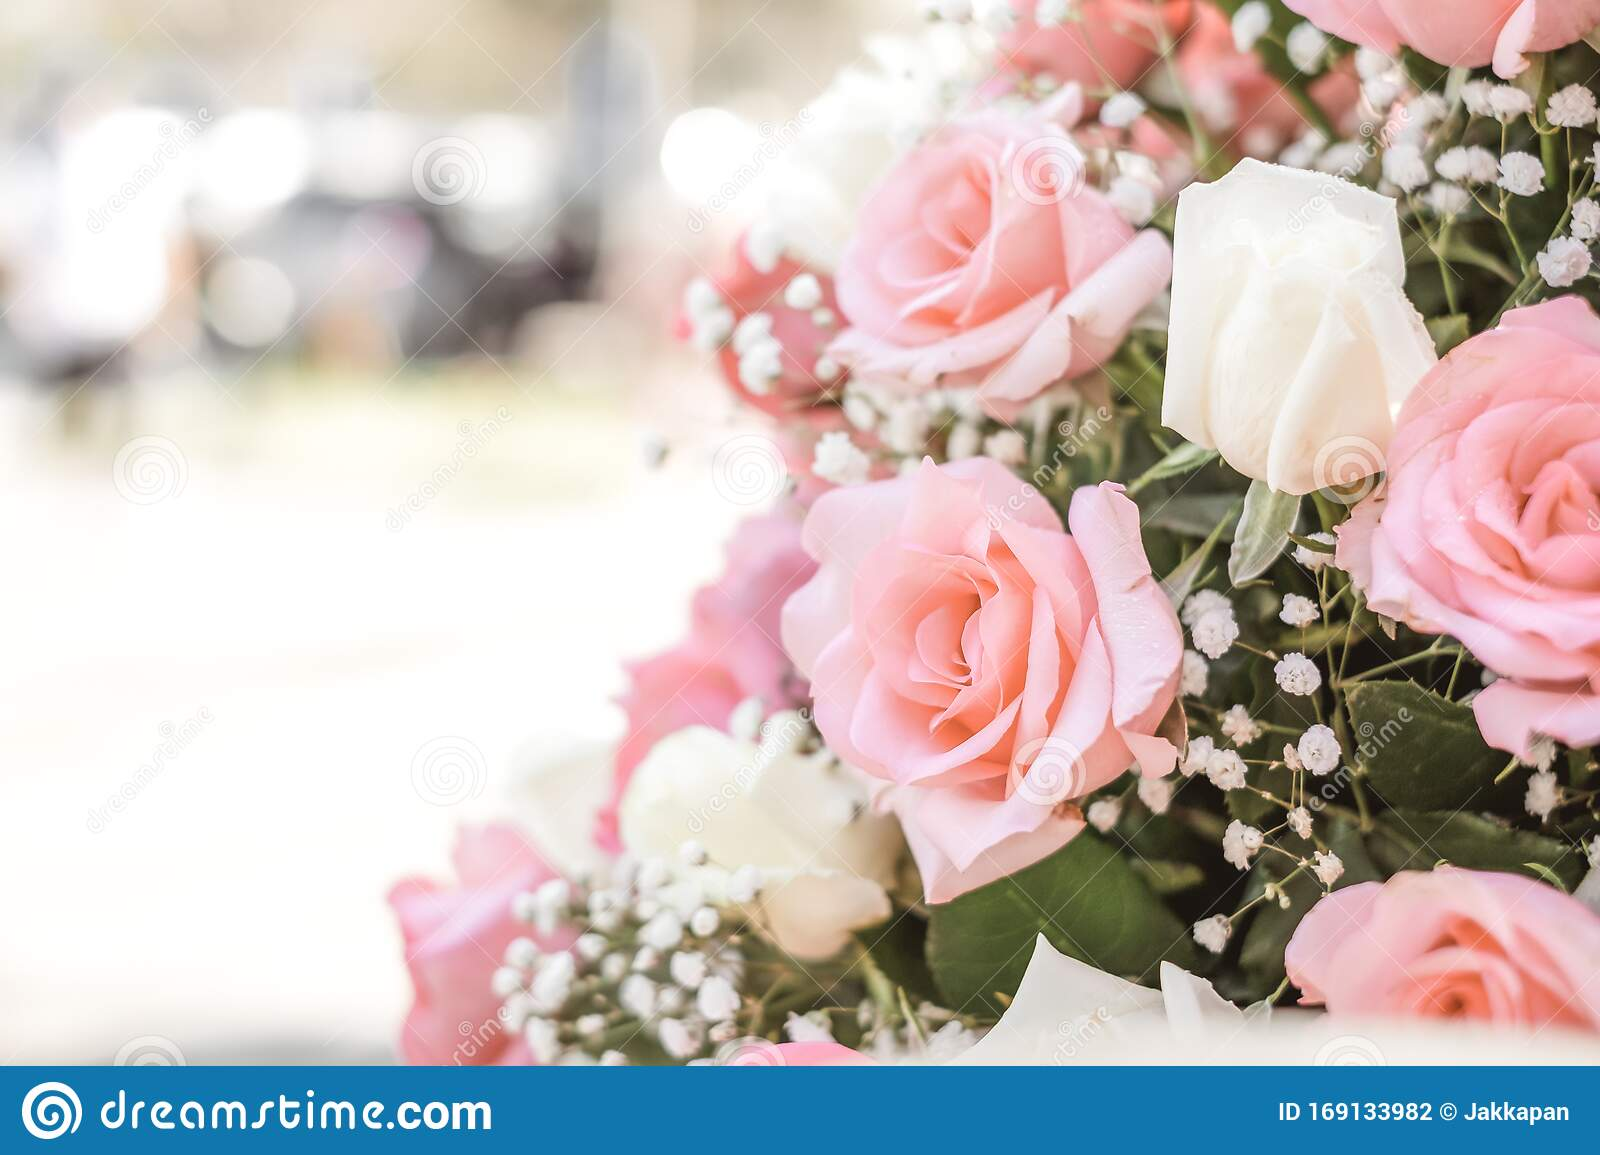 Rose Bouquet In Wedding Day Love And Romantic Background Stock